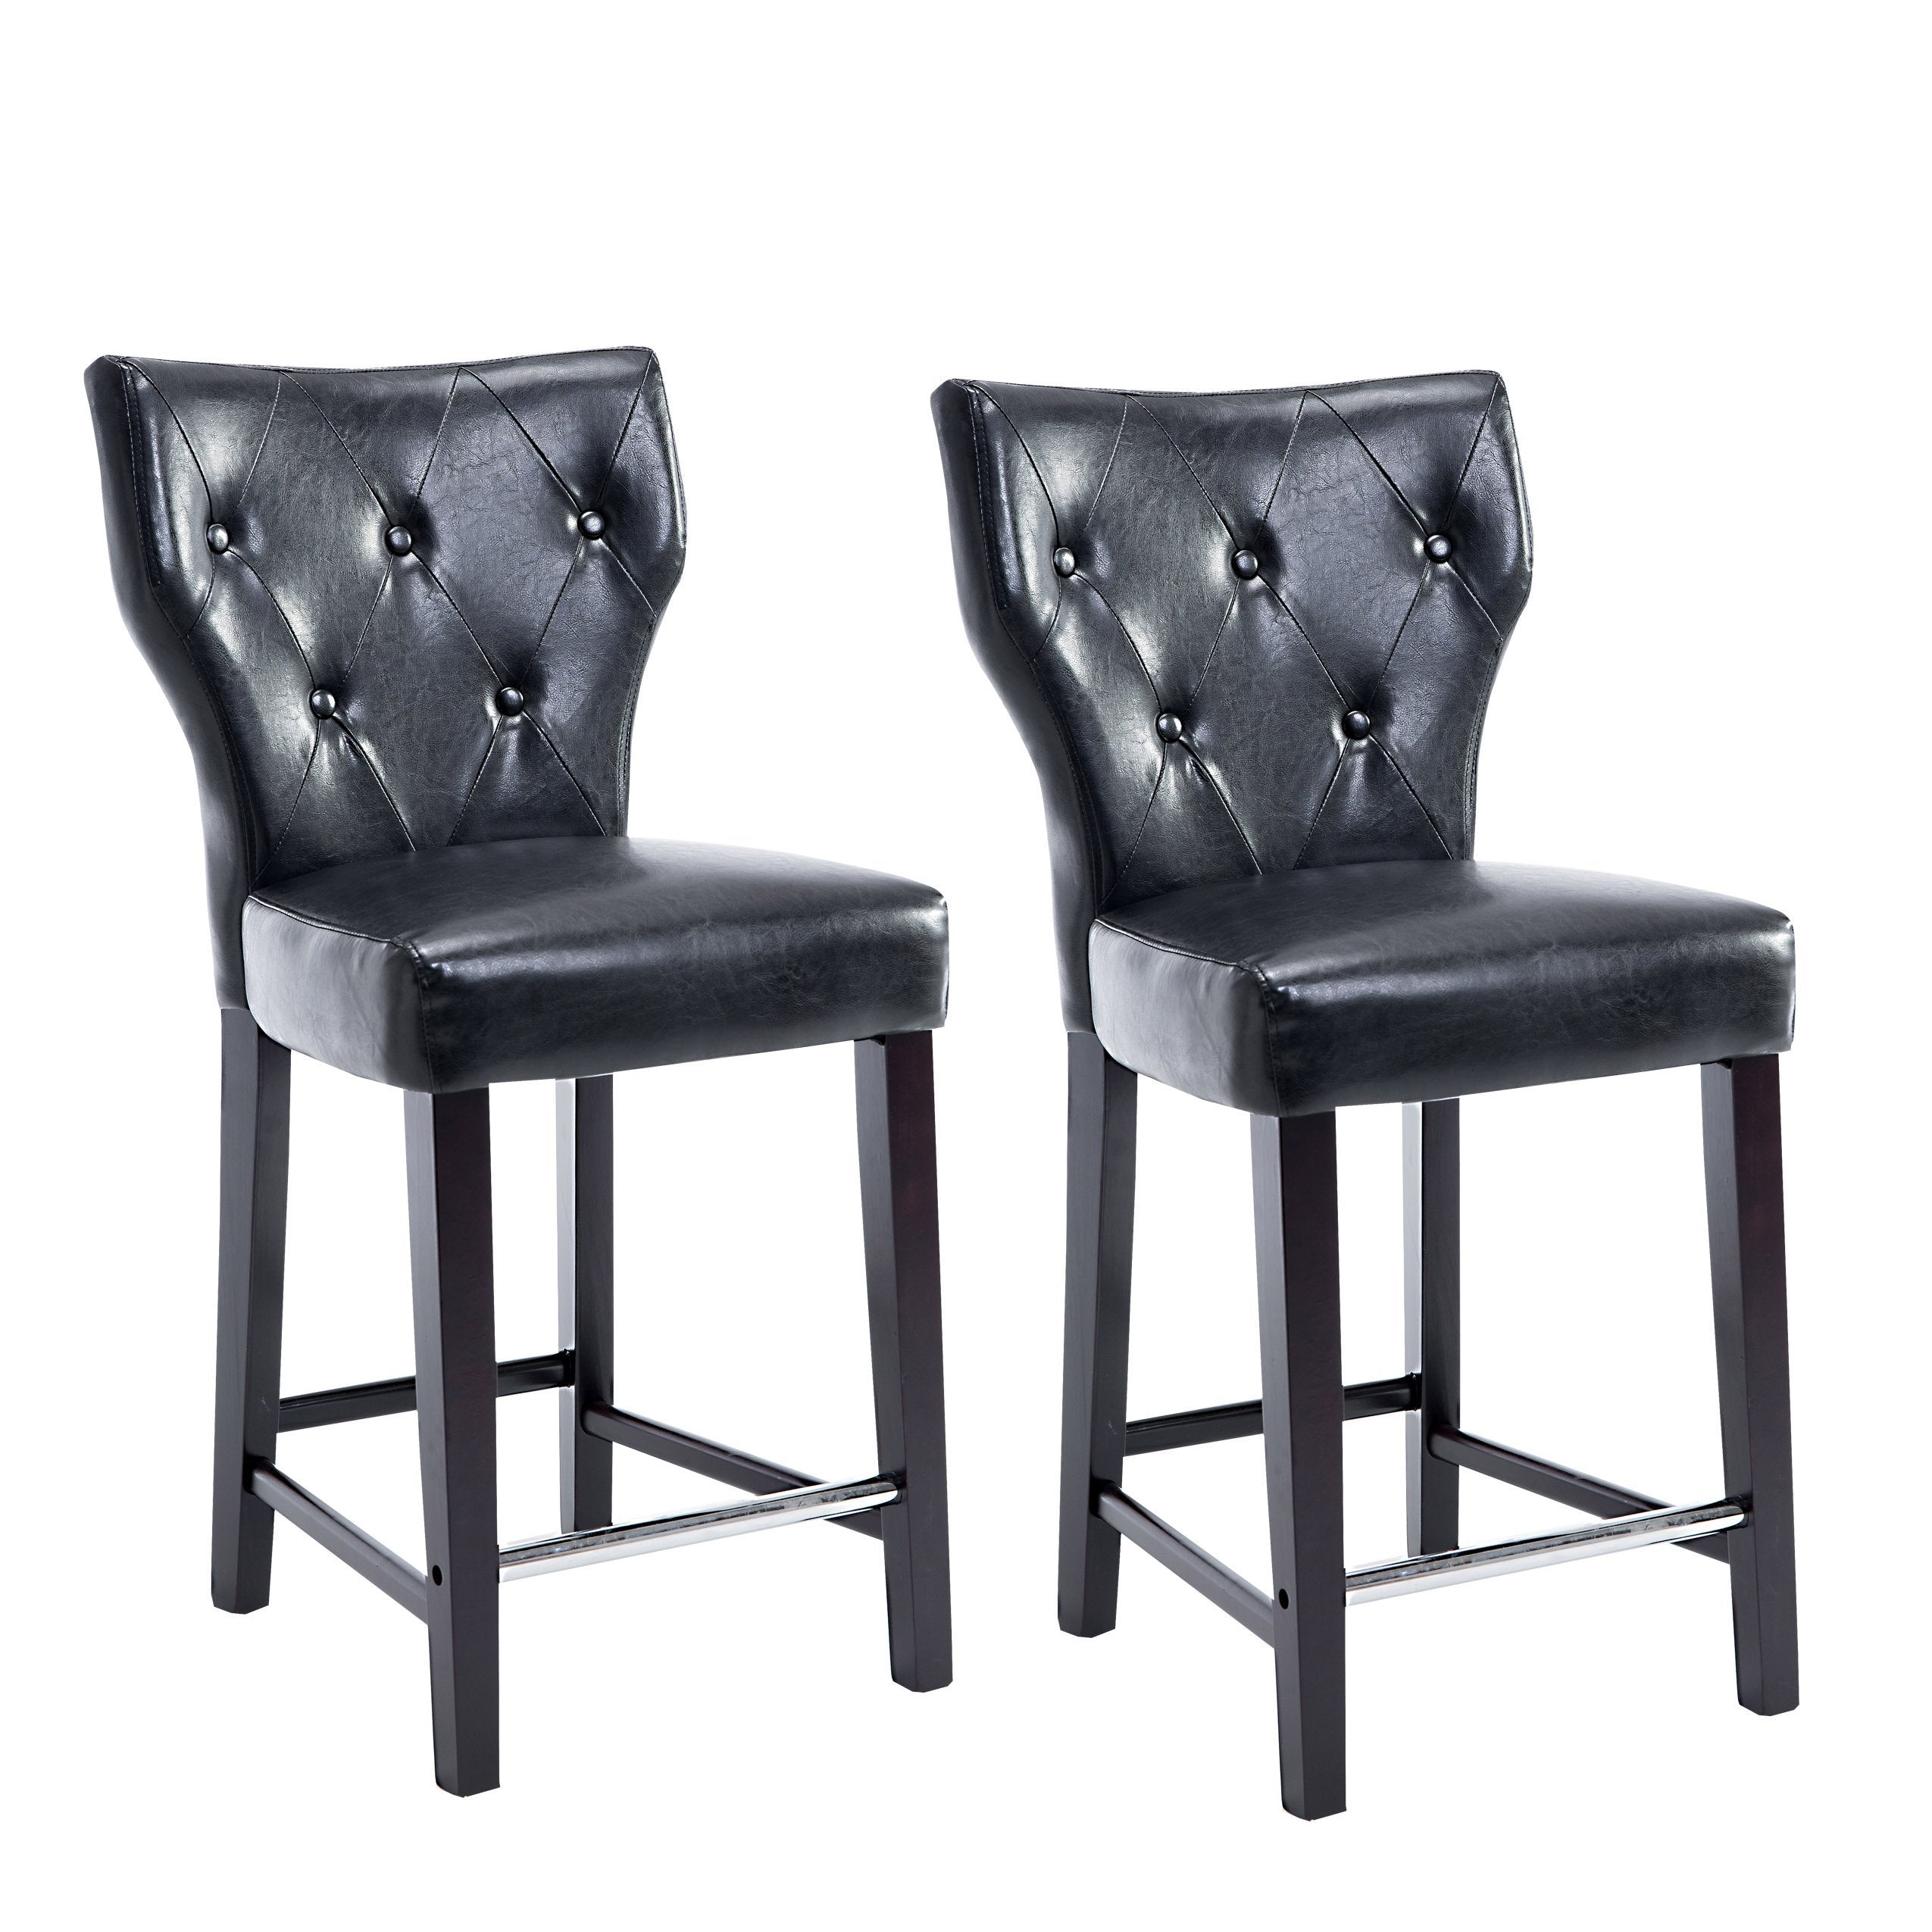 Wondrous Leather Button Tufted Counter Height Bar Stool Set Of 2 Clearance Dailytribune Chair Design For Home Dailytribuneorg